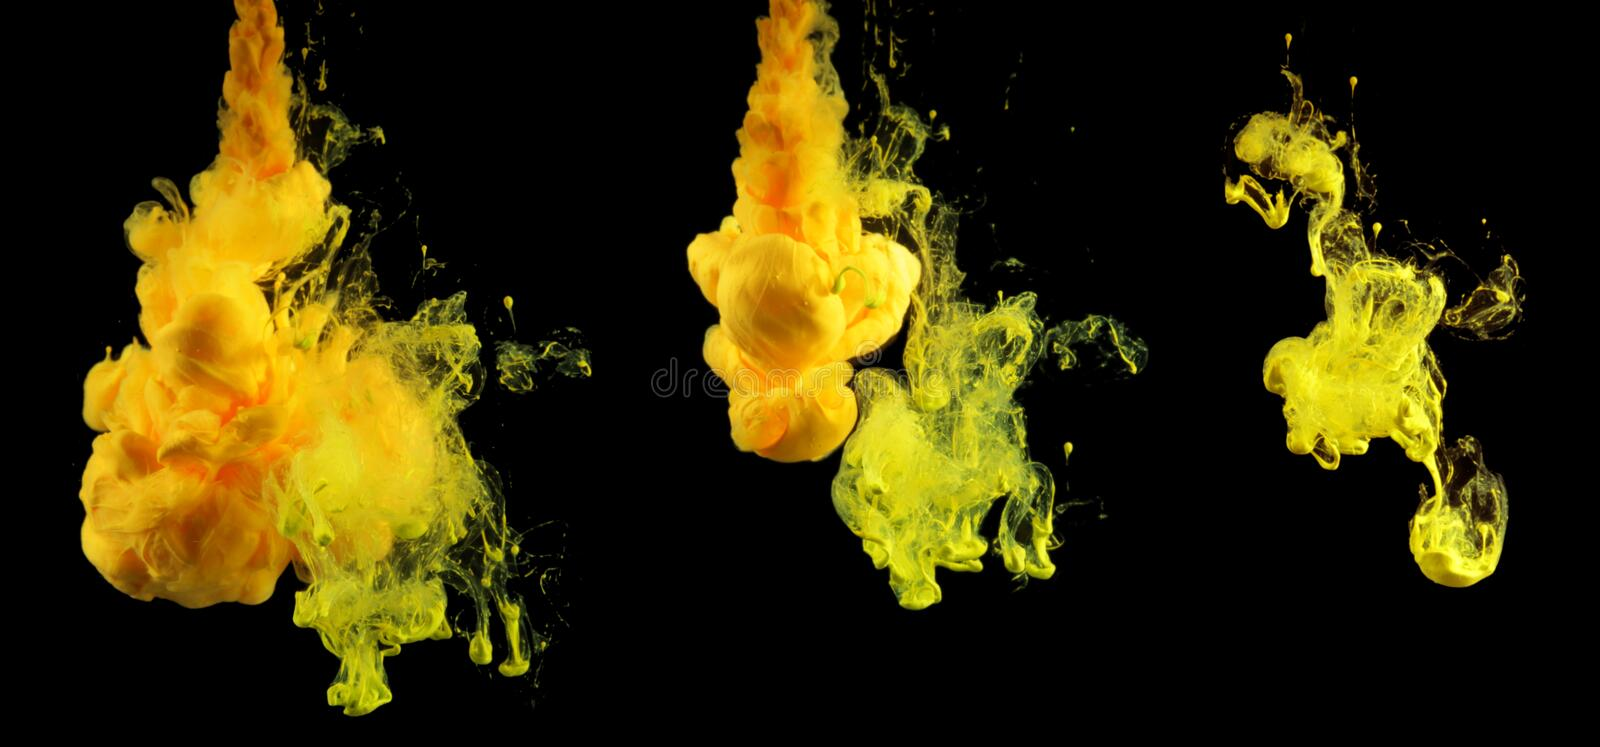 Acrylic colors in water. Ink blot. Abstract background. Collection on black.  stock photos